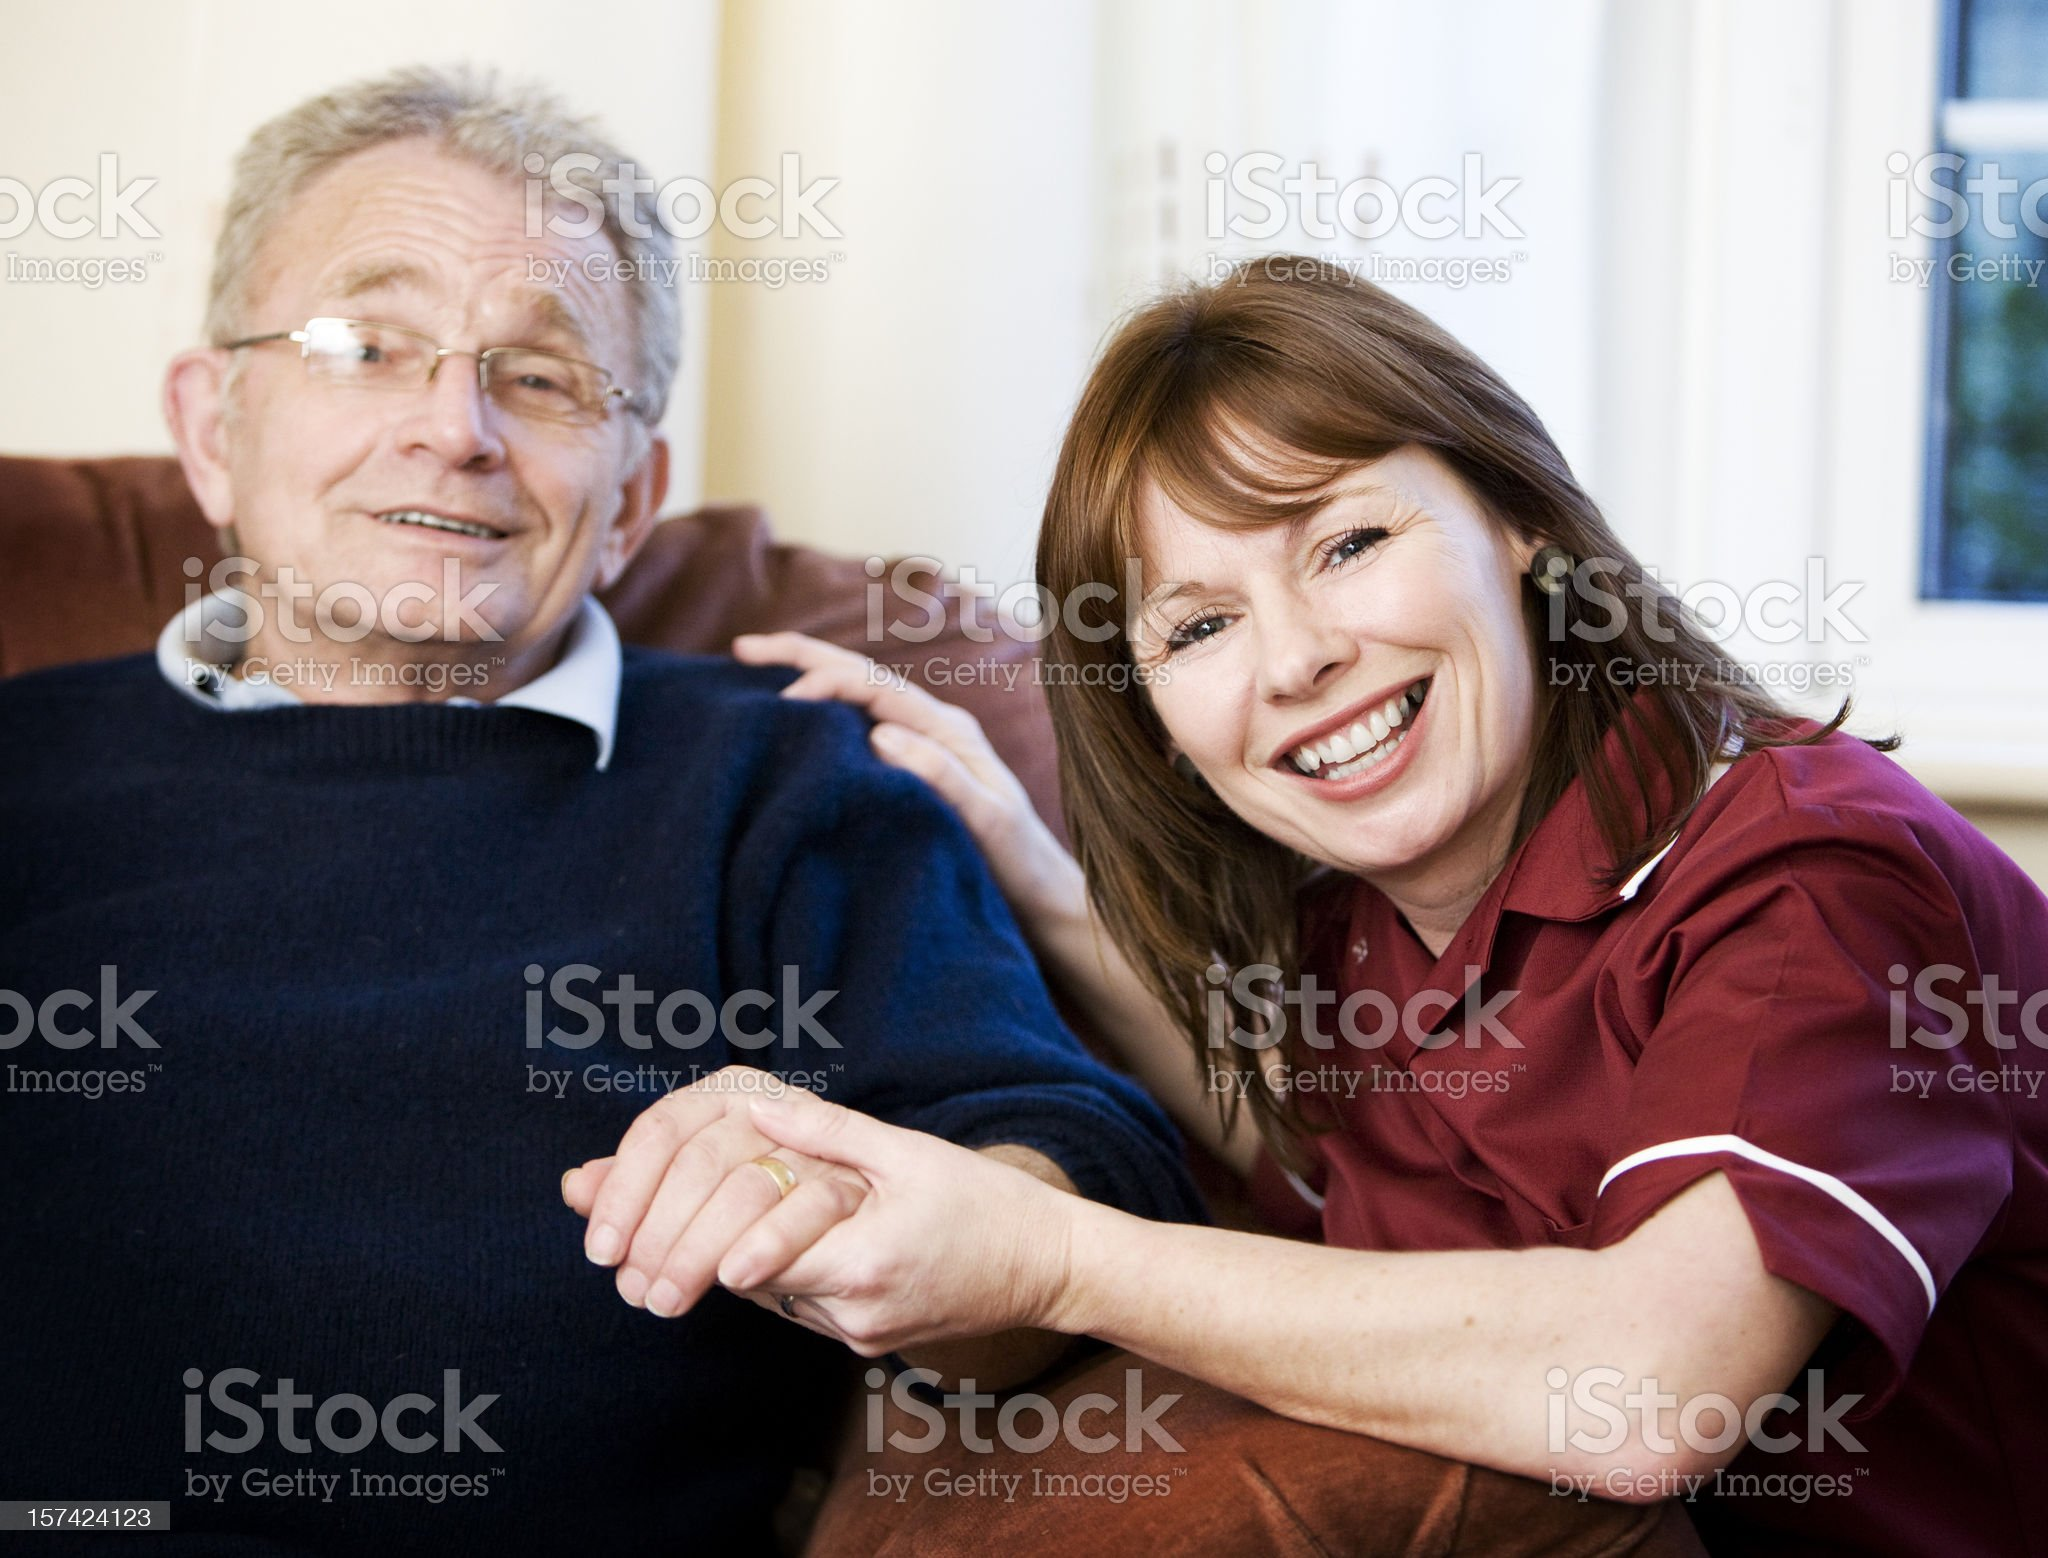 Healthcare: smiles from a care worker and her senior client royalty-free stock photo